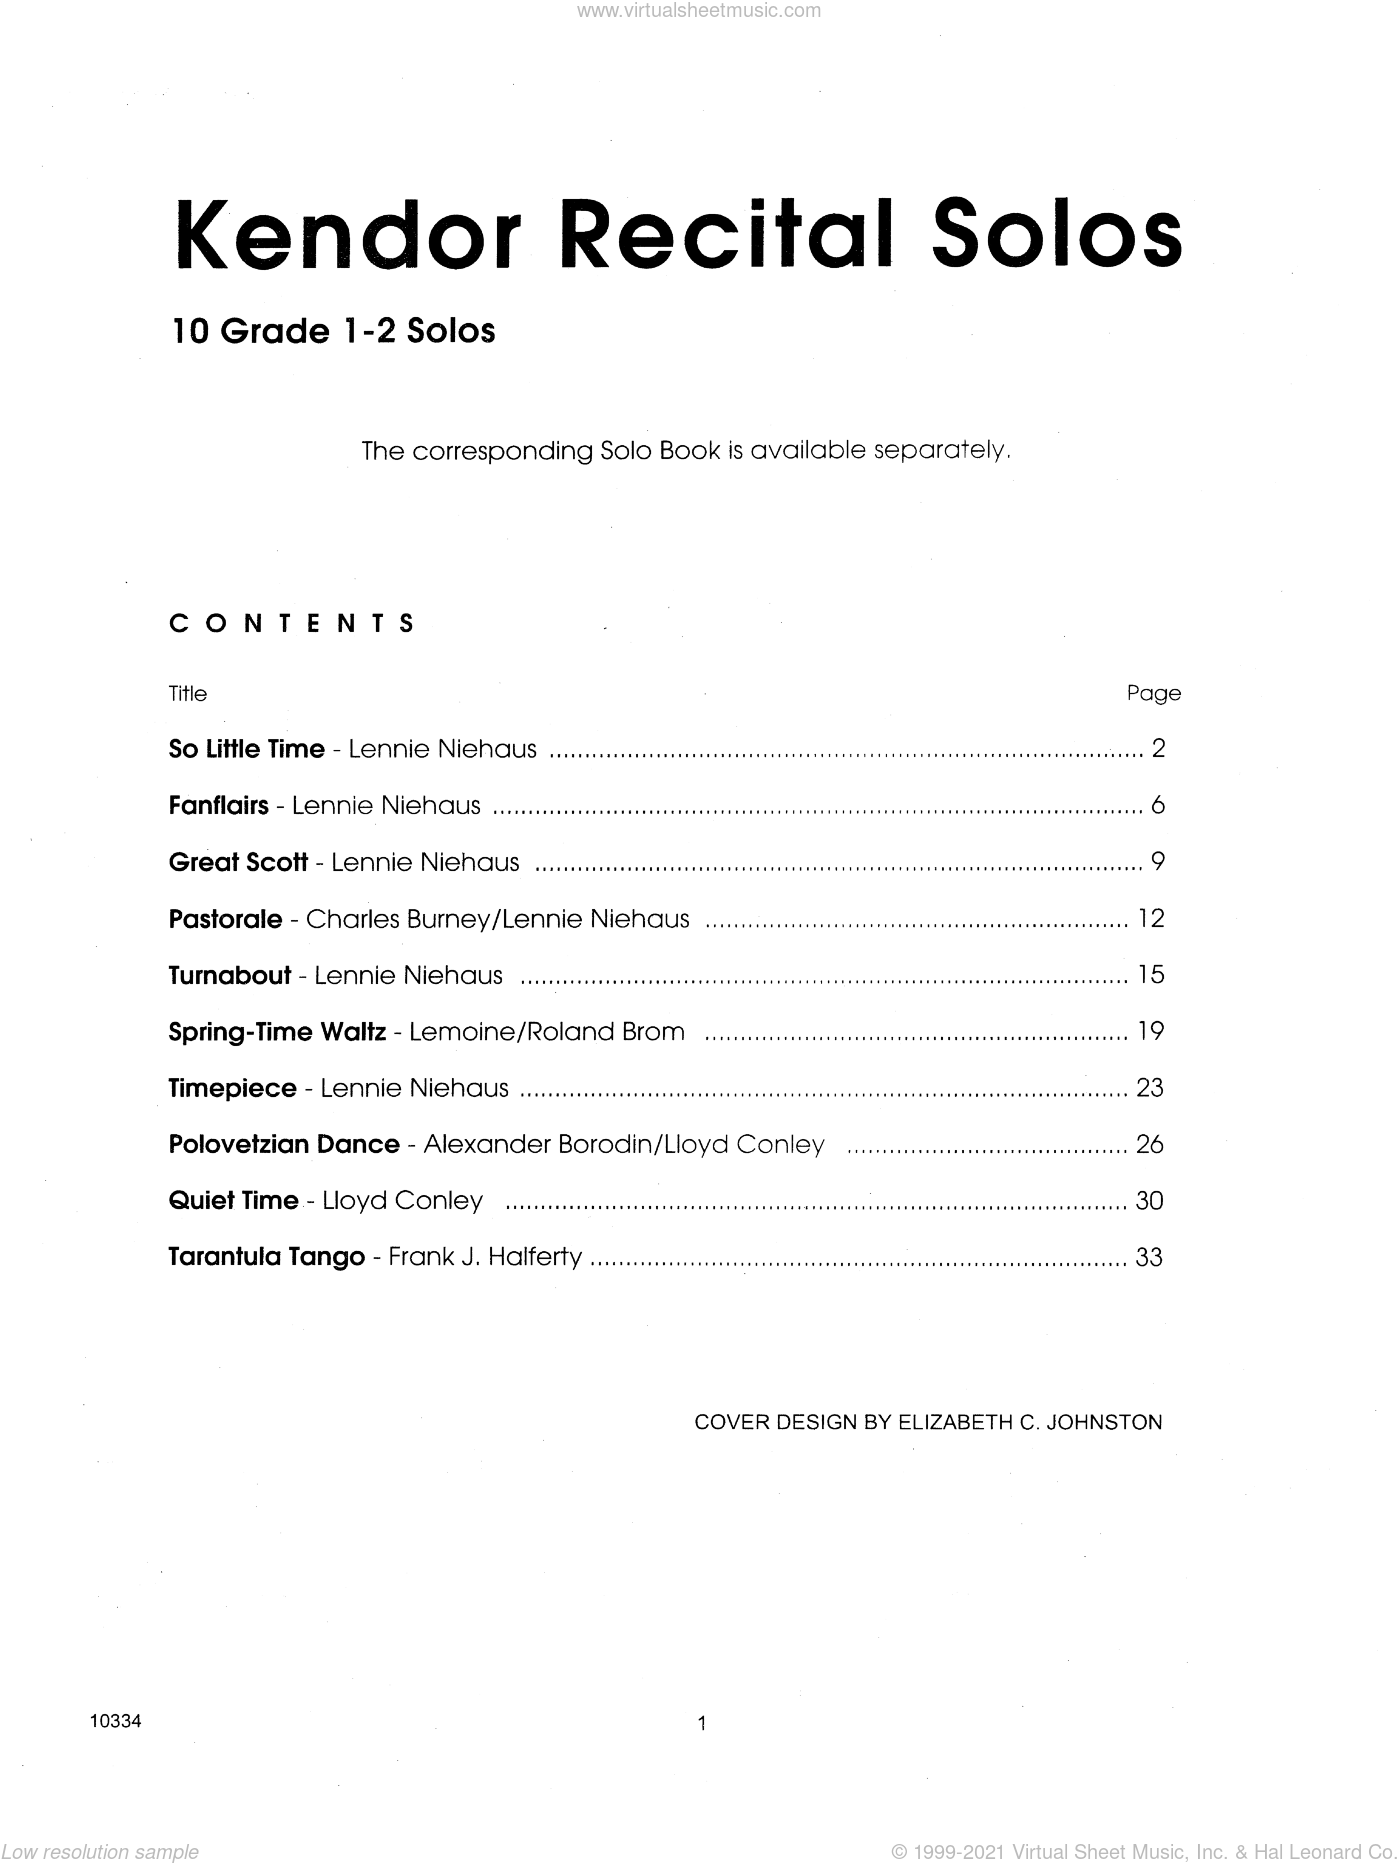 Kendor Recital Solos - Clarinet (Piano Accompaniment Book Only) sheet music for clarinet and piano. Score Image Preview.